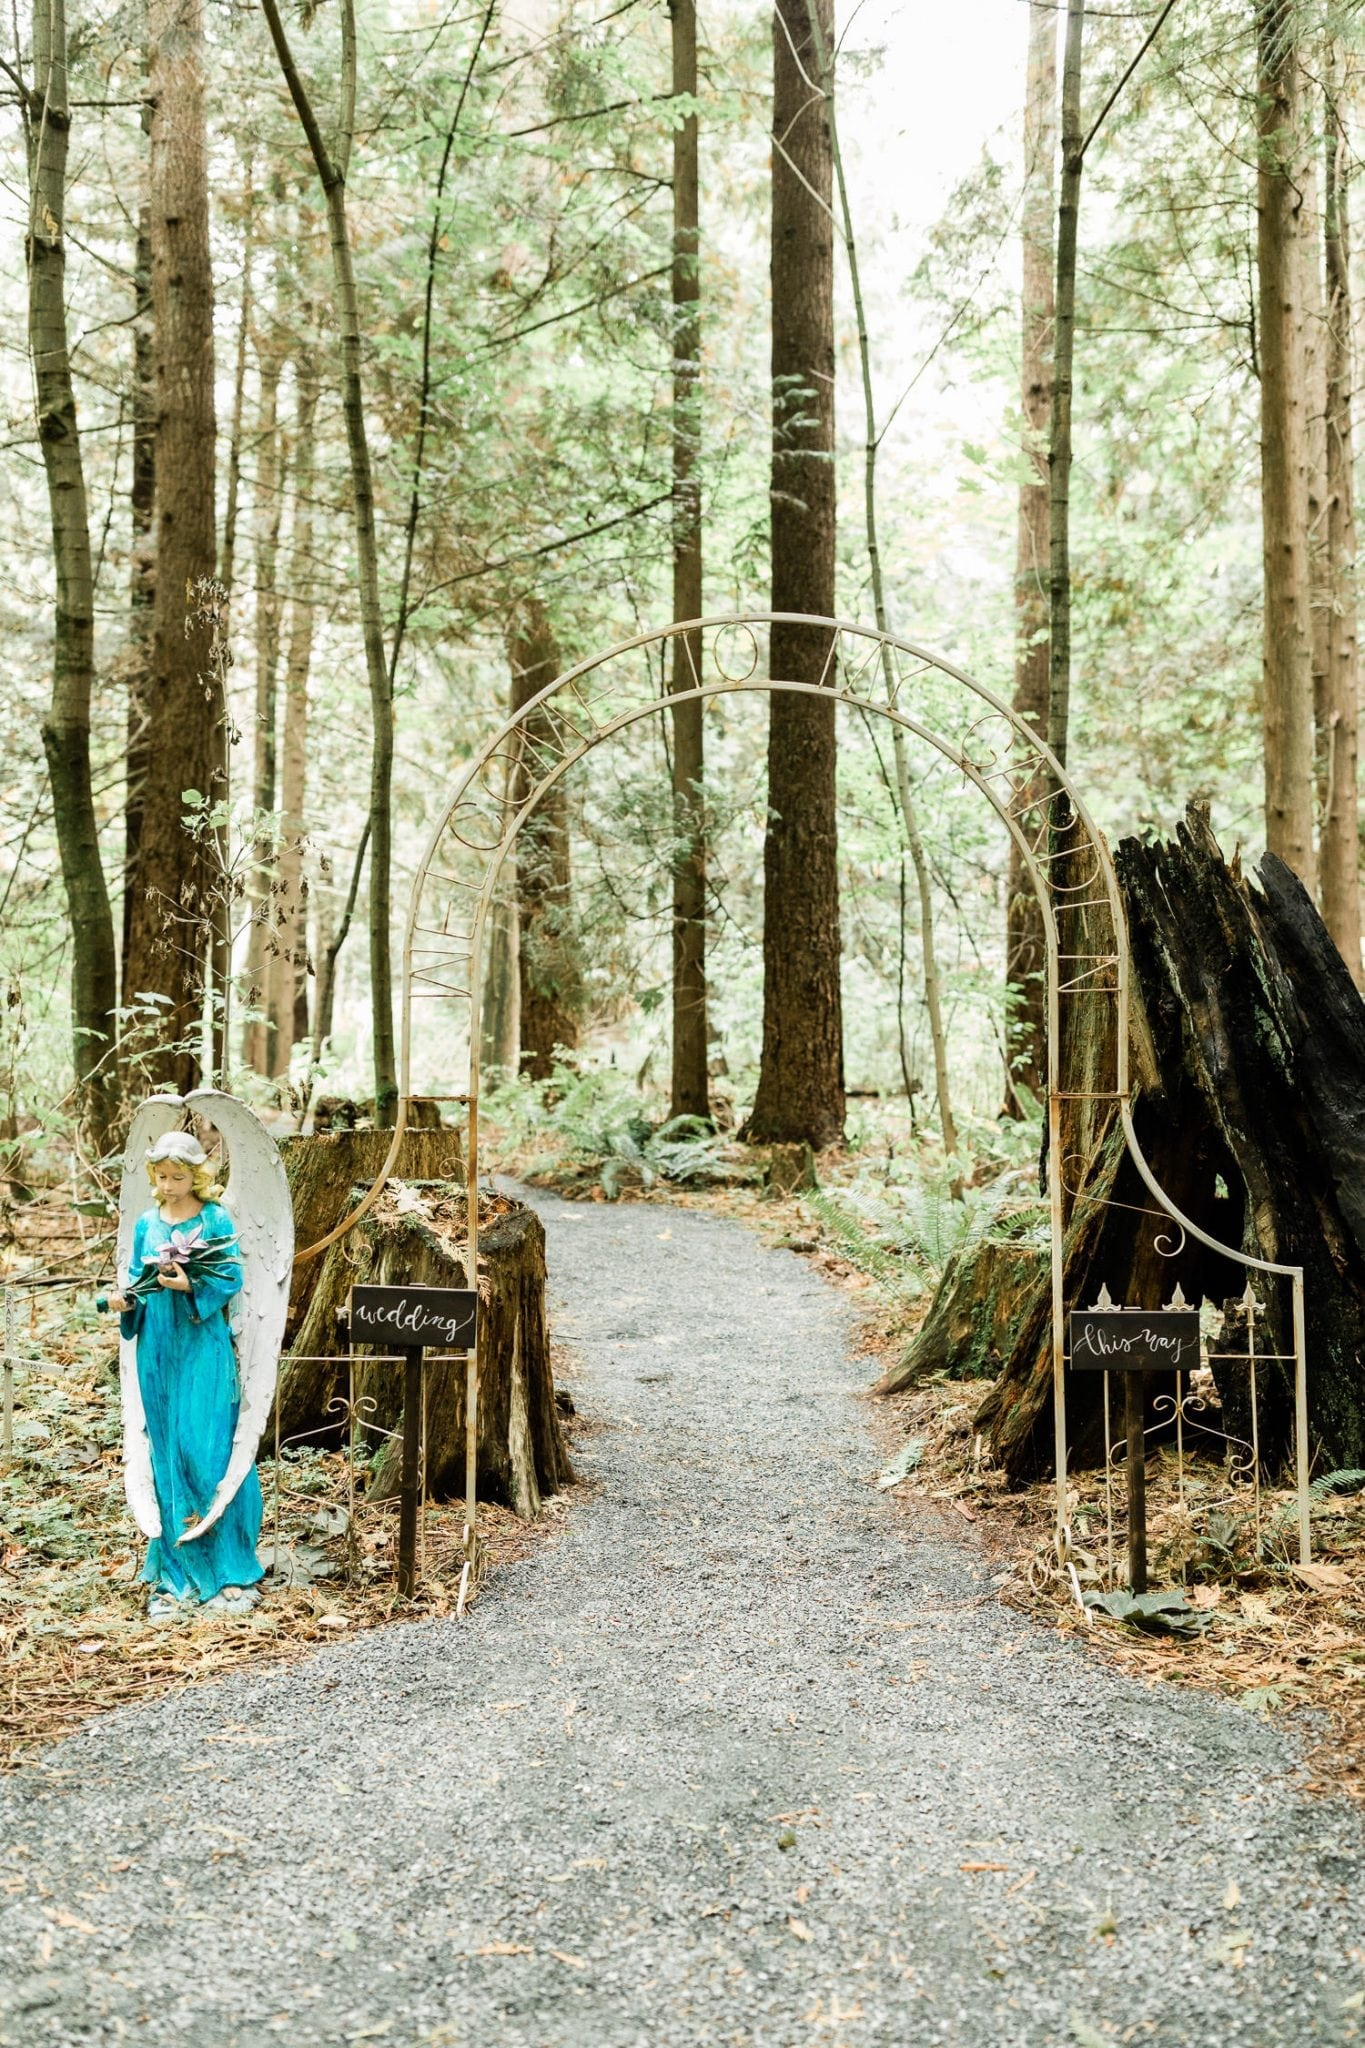 Rustic arch decoration in the woods | Vancouver wedding photographer